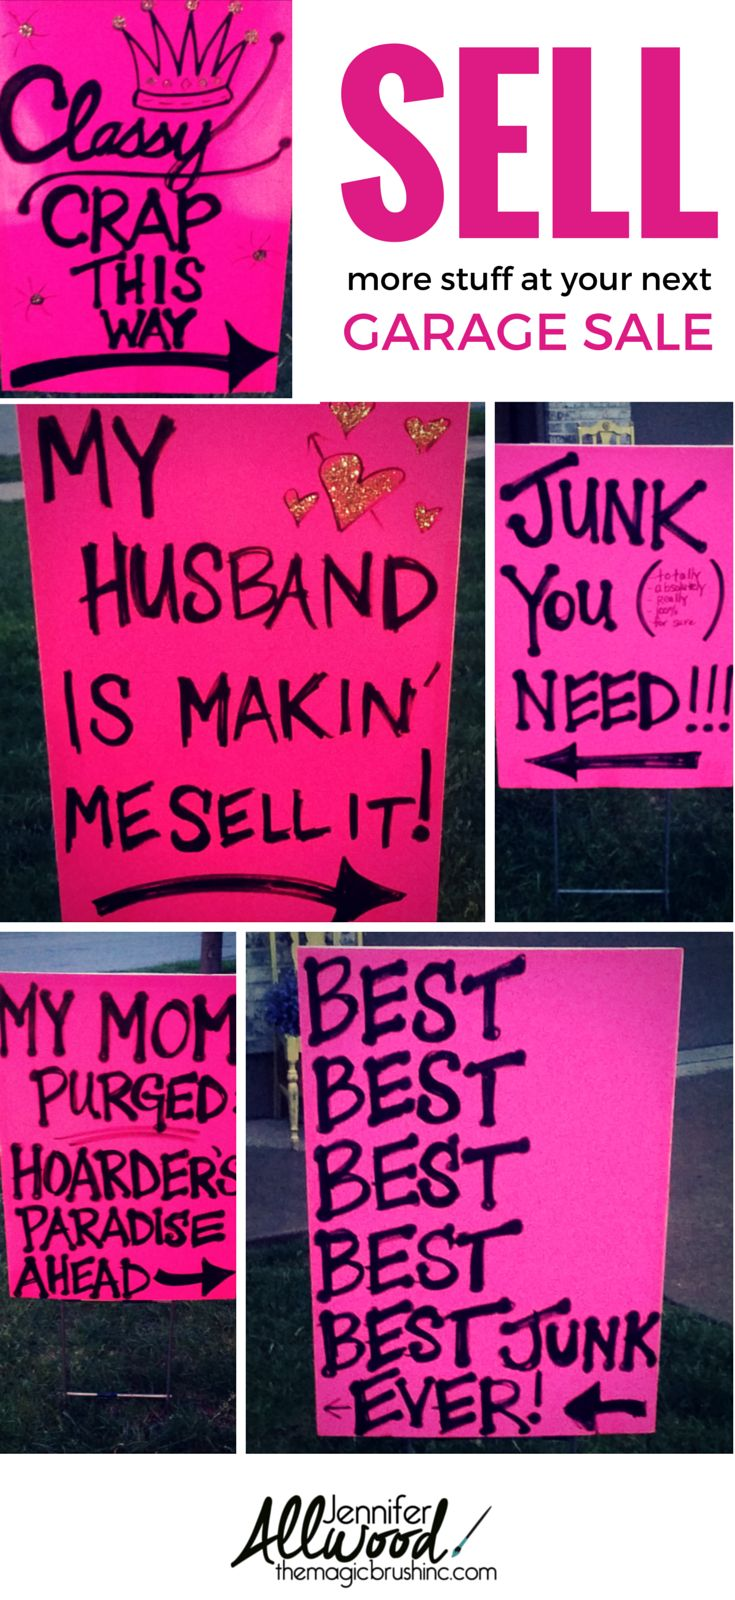 How to advertise for a garage sale with clever signs